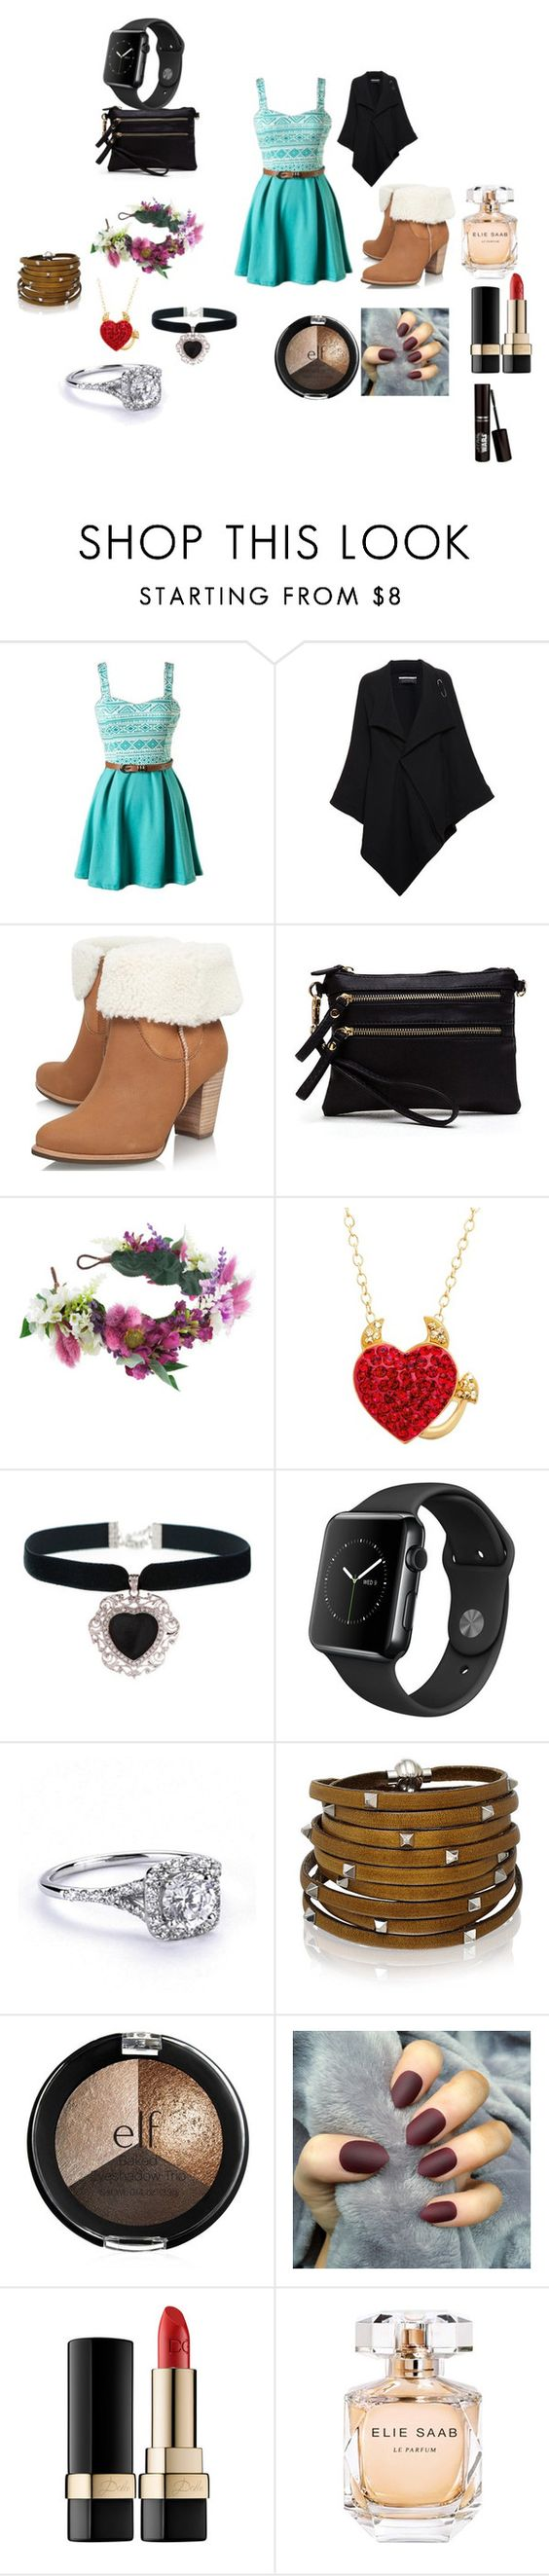 """Untitled #14"" by gosnow on Polyvore featuring Roland Mouret, UGG Australia, Rock 'N Rose, Sif Jakobs Jewellery, Dolce&Gabbana and Elie Saab"